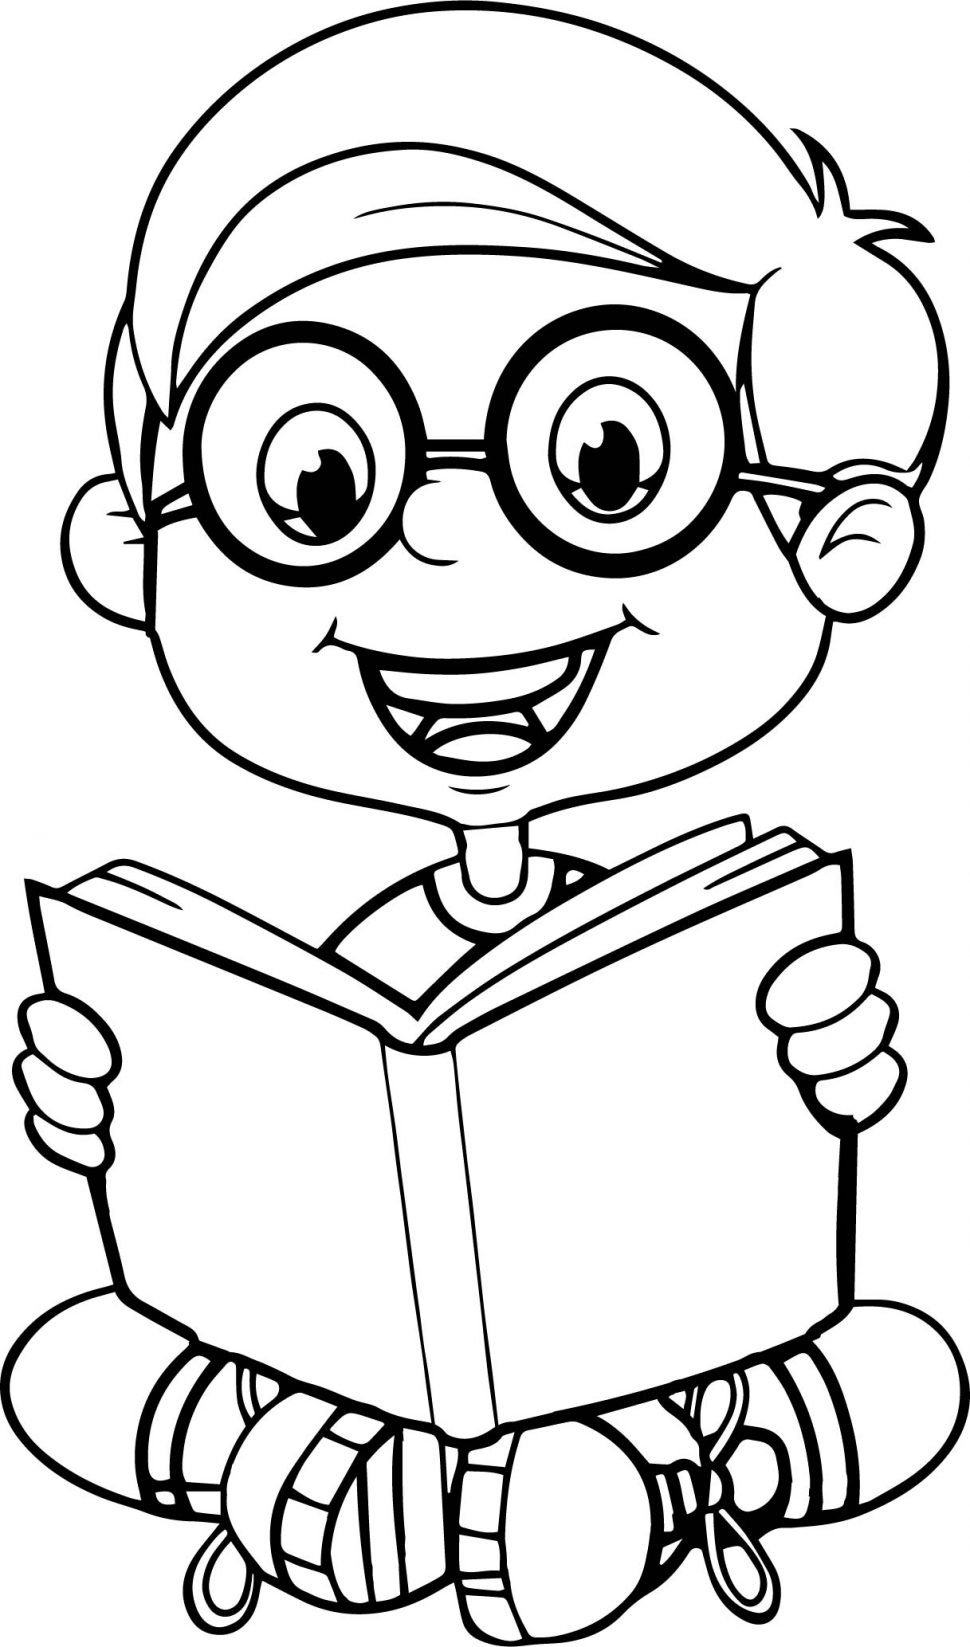 reading coloring worksheets coloring pages of children reading at getcoloringscom worksheets coloring reading